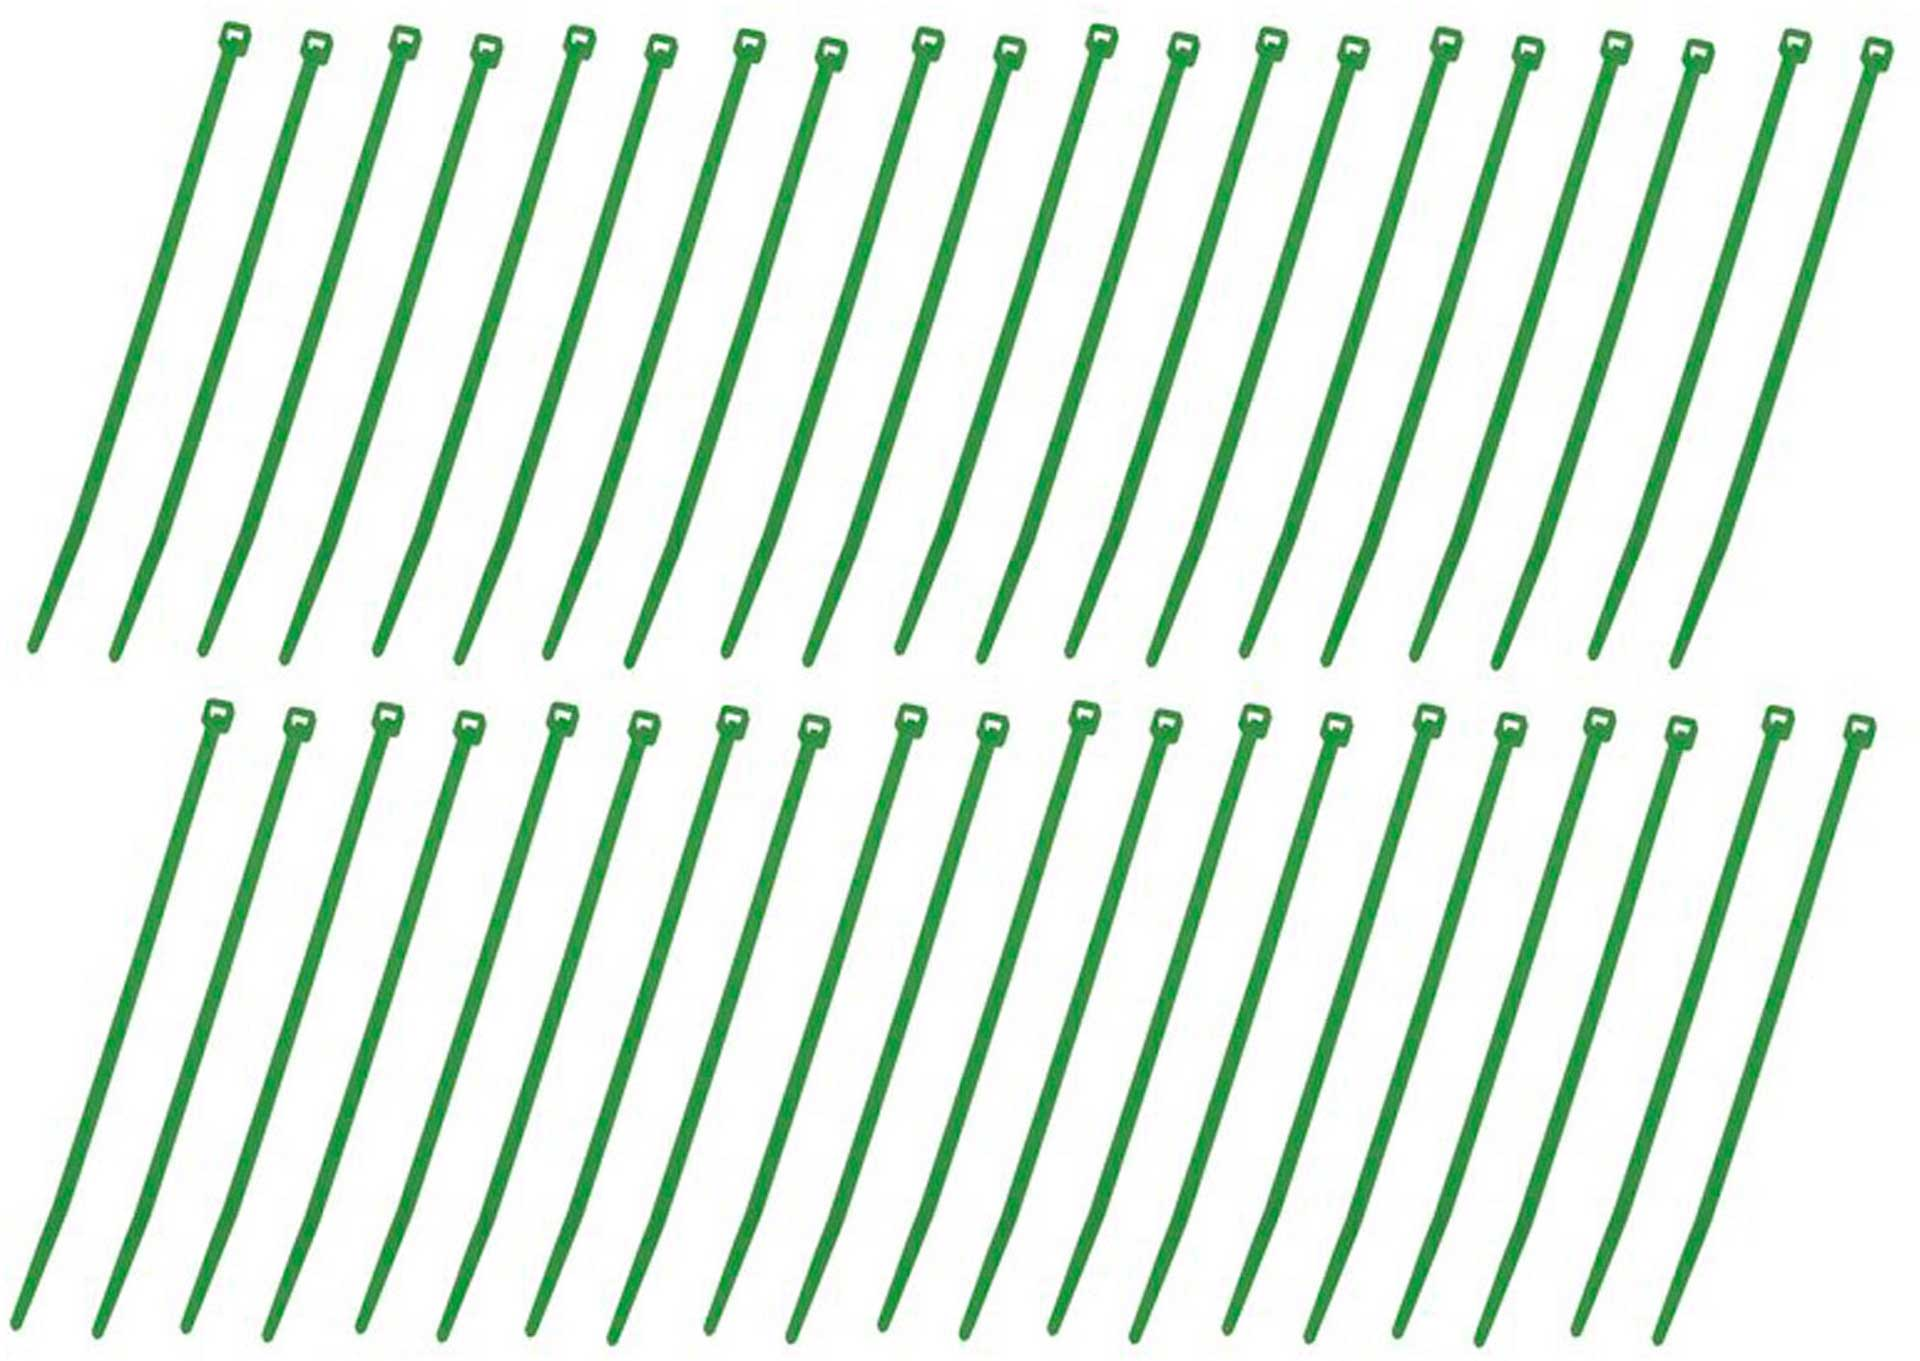 GRAUPNER CABLE TIE 40PCS. GREEN - GREEN